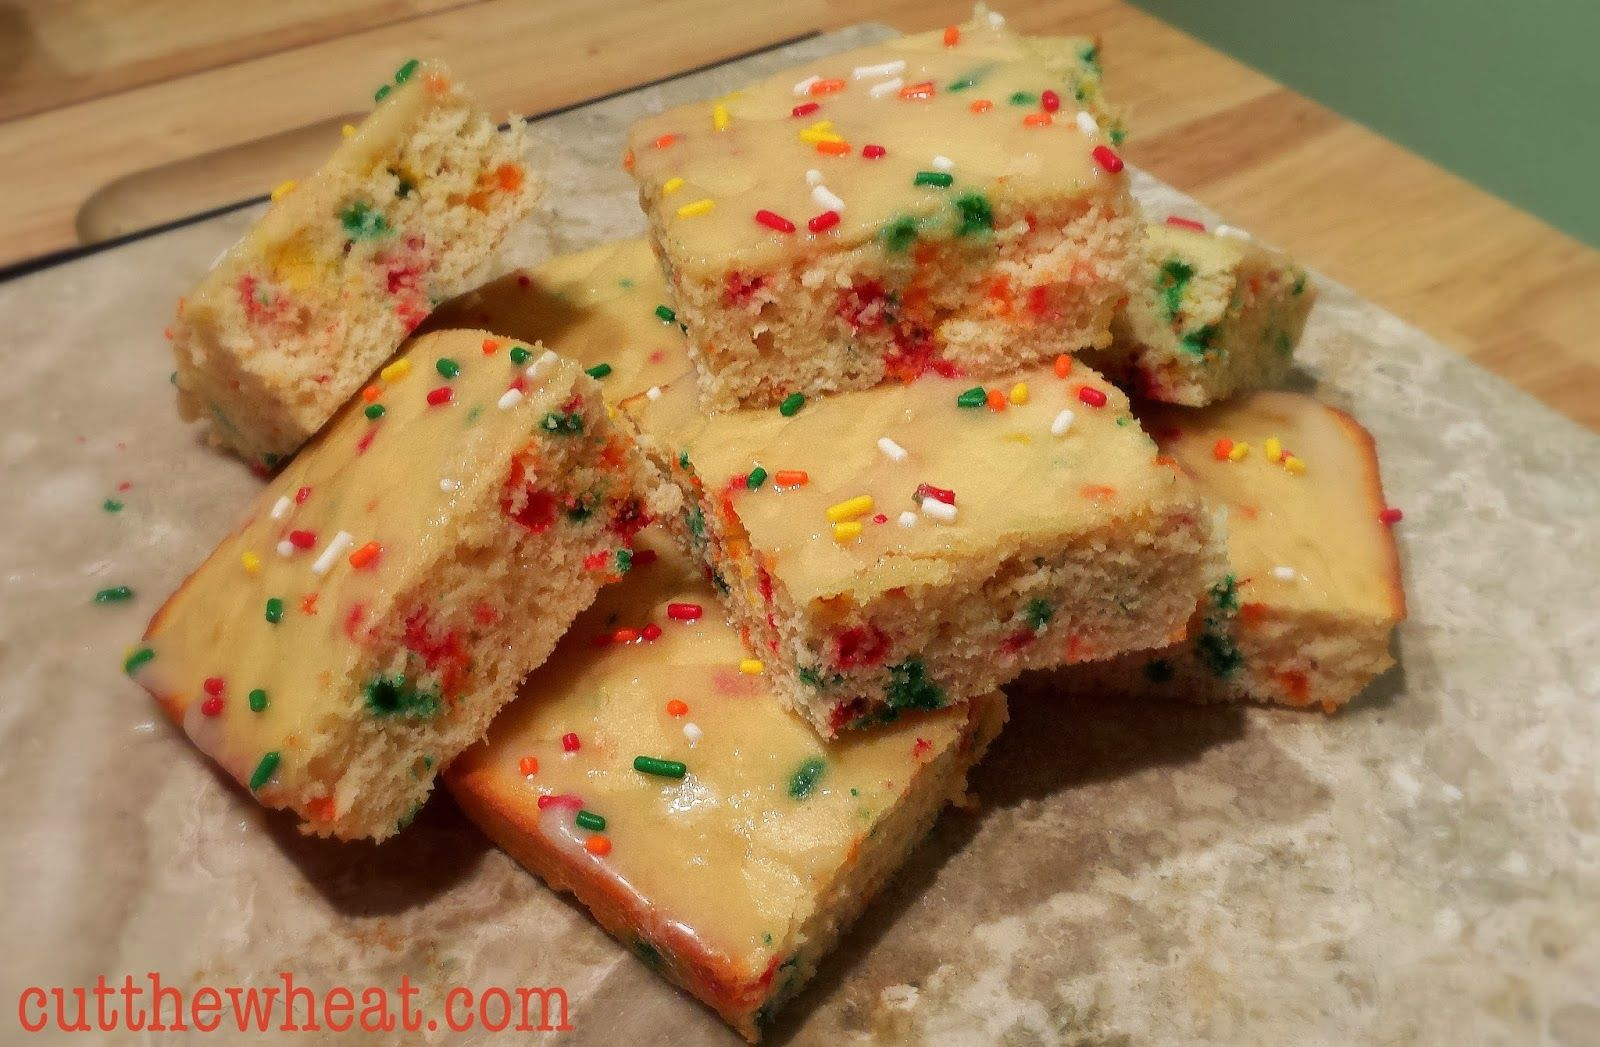 Low Carb Birthday Cake Bars Make A Great Celebration Just 3g Net Carbs Wheat Free Grain